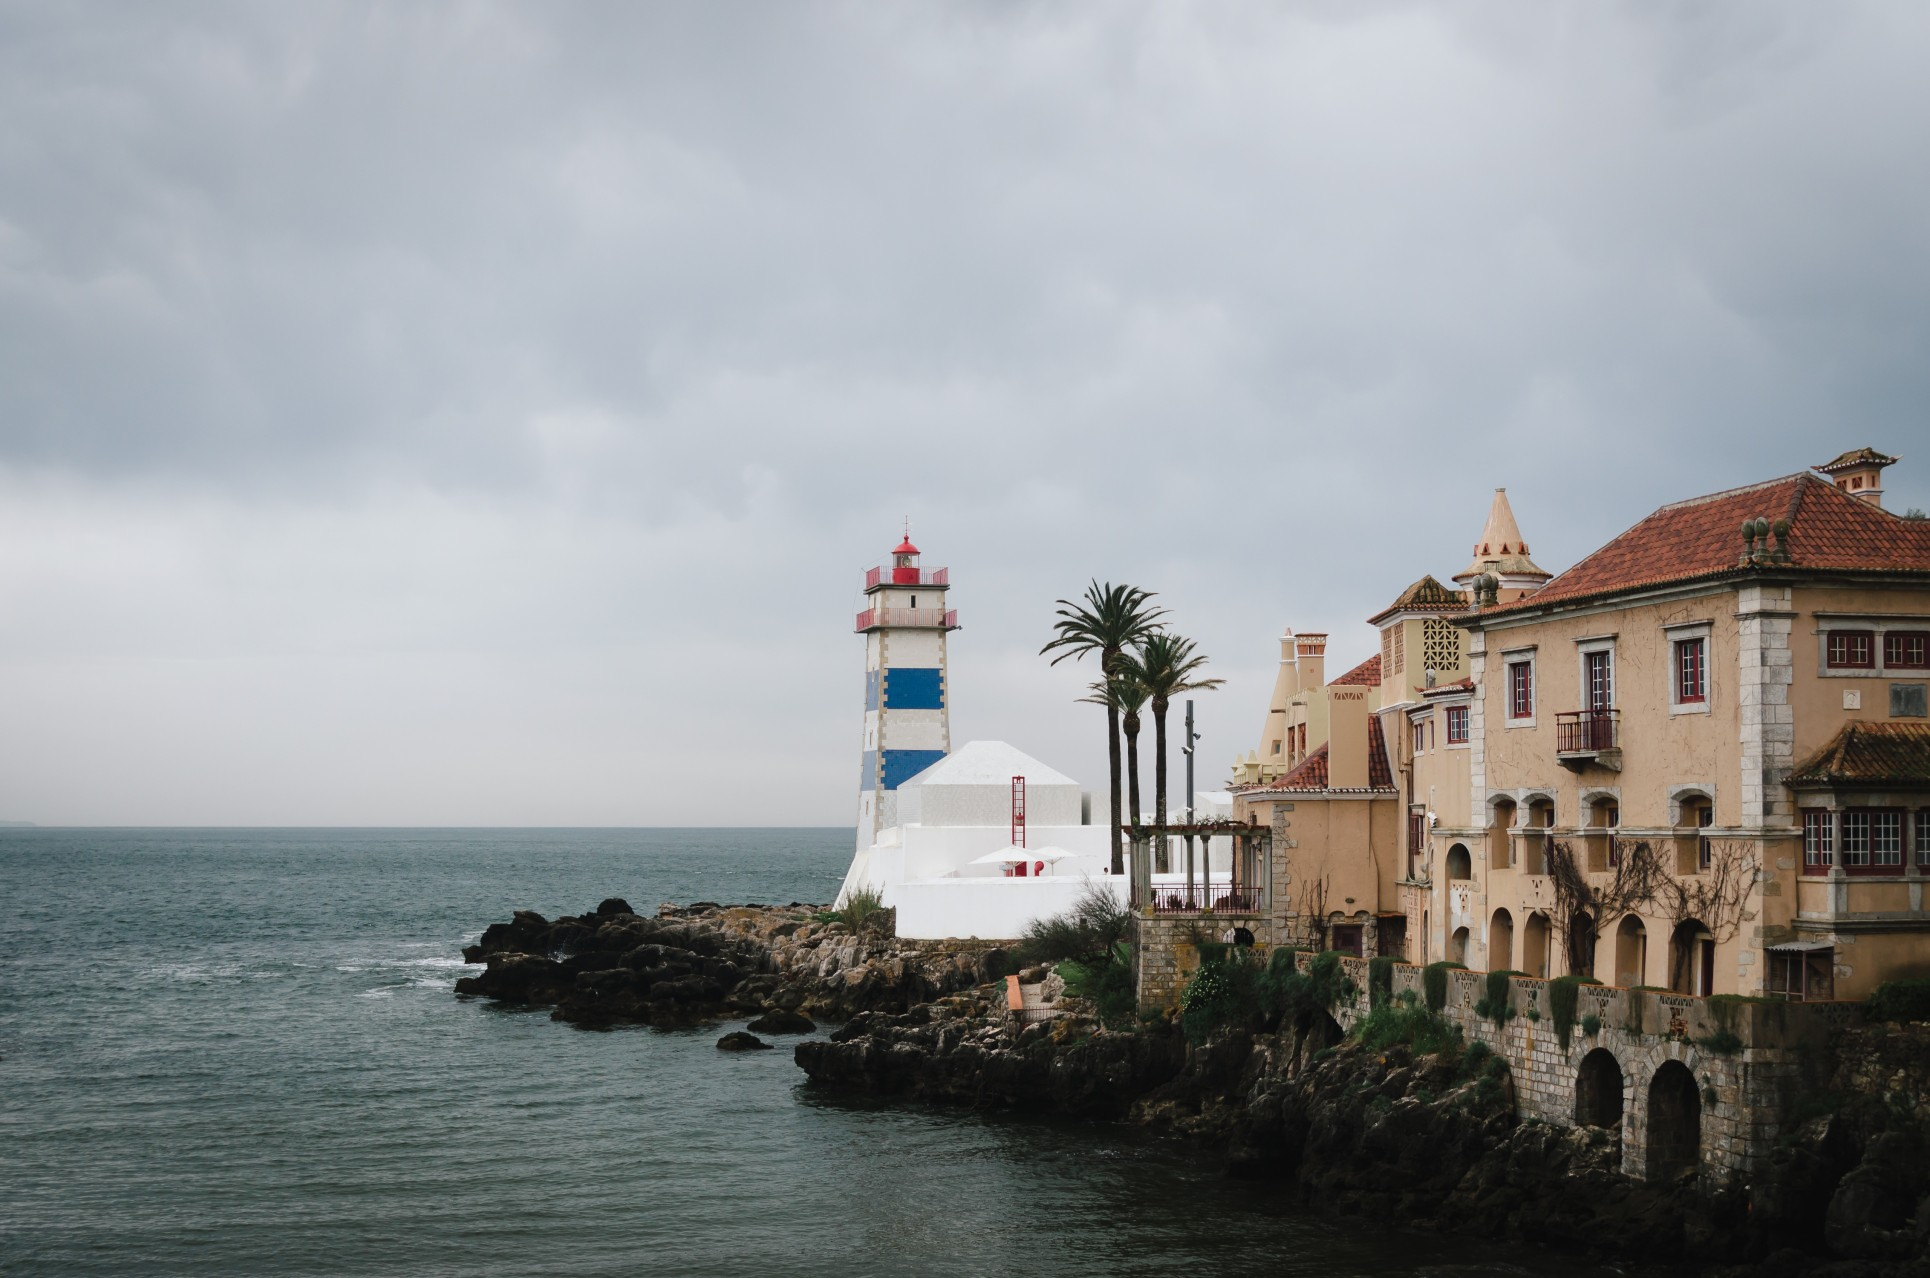 The Lighthouse of Cascais